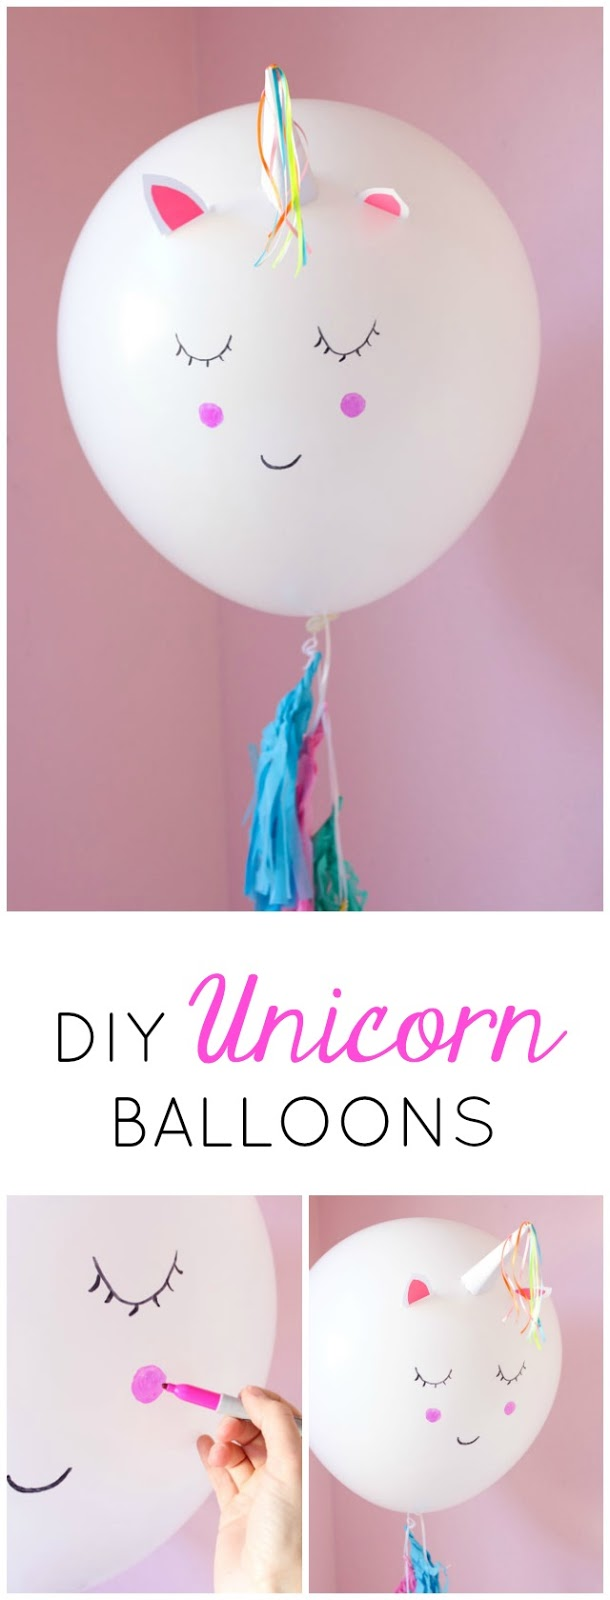 Make these giant DIY unicorn balloons in minutes! Perfect for a unicorn birthday party decoration! #unicorncraft #unicornballoons #unicornparty